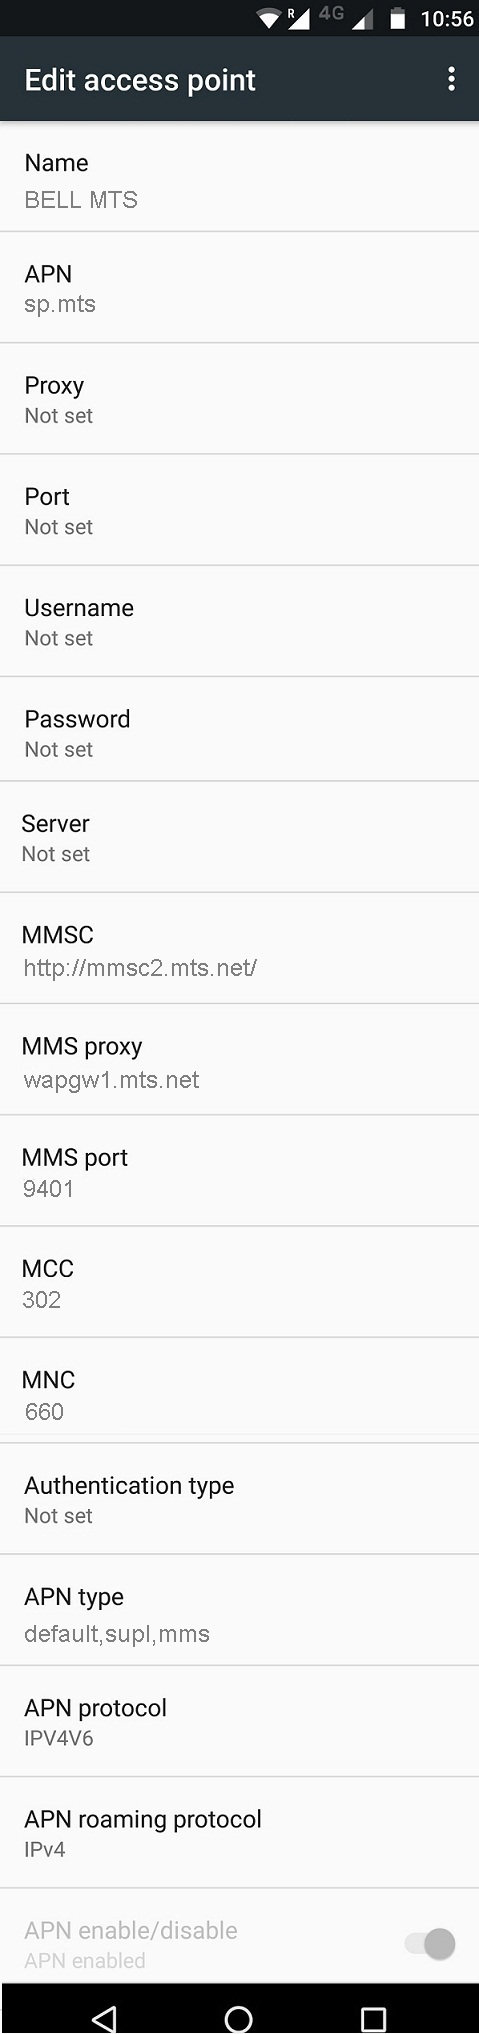 BELL MTS APN Settings for Android